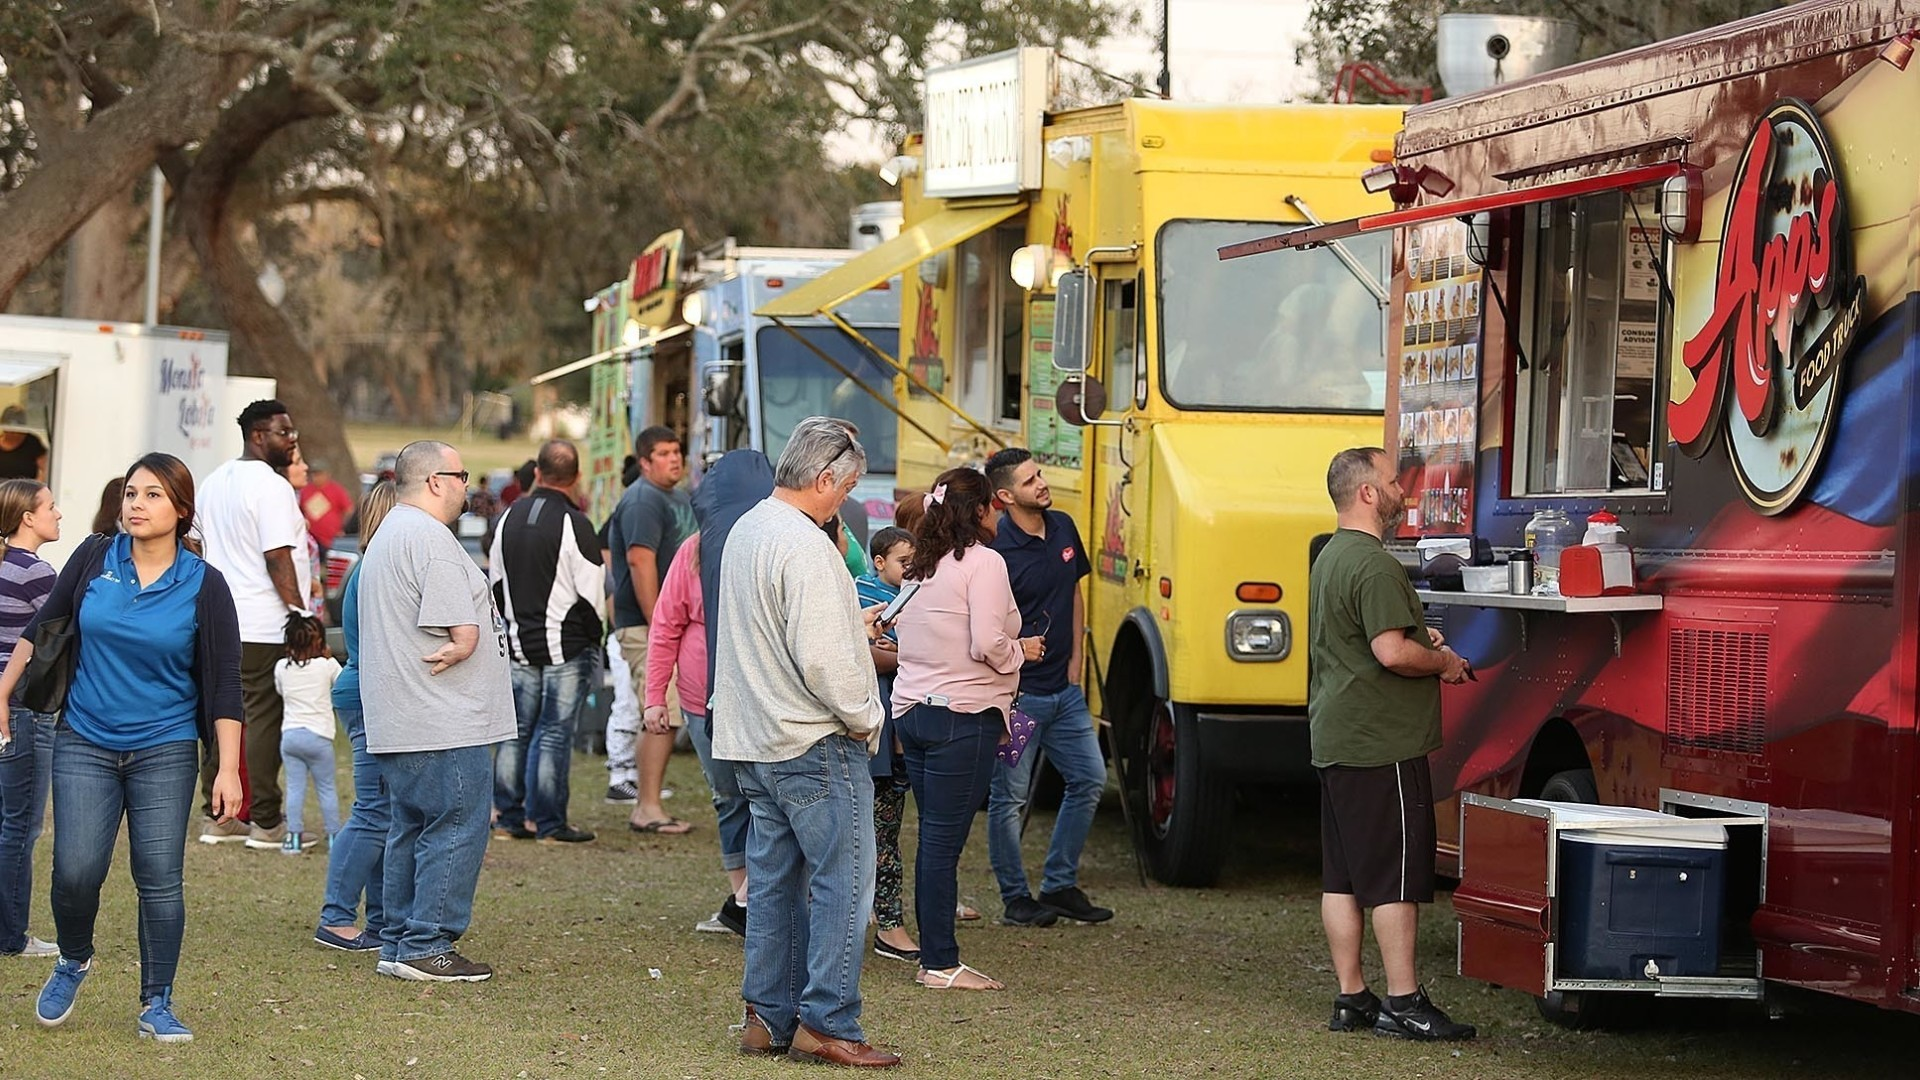 Regions Food Truck Events Face Competition For Trucks Customers